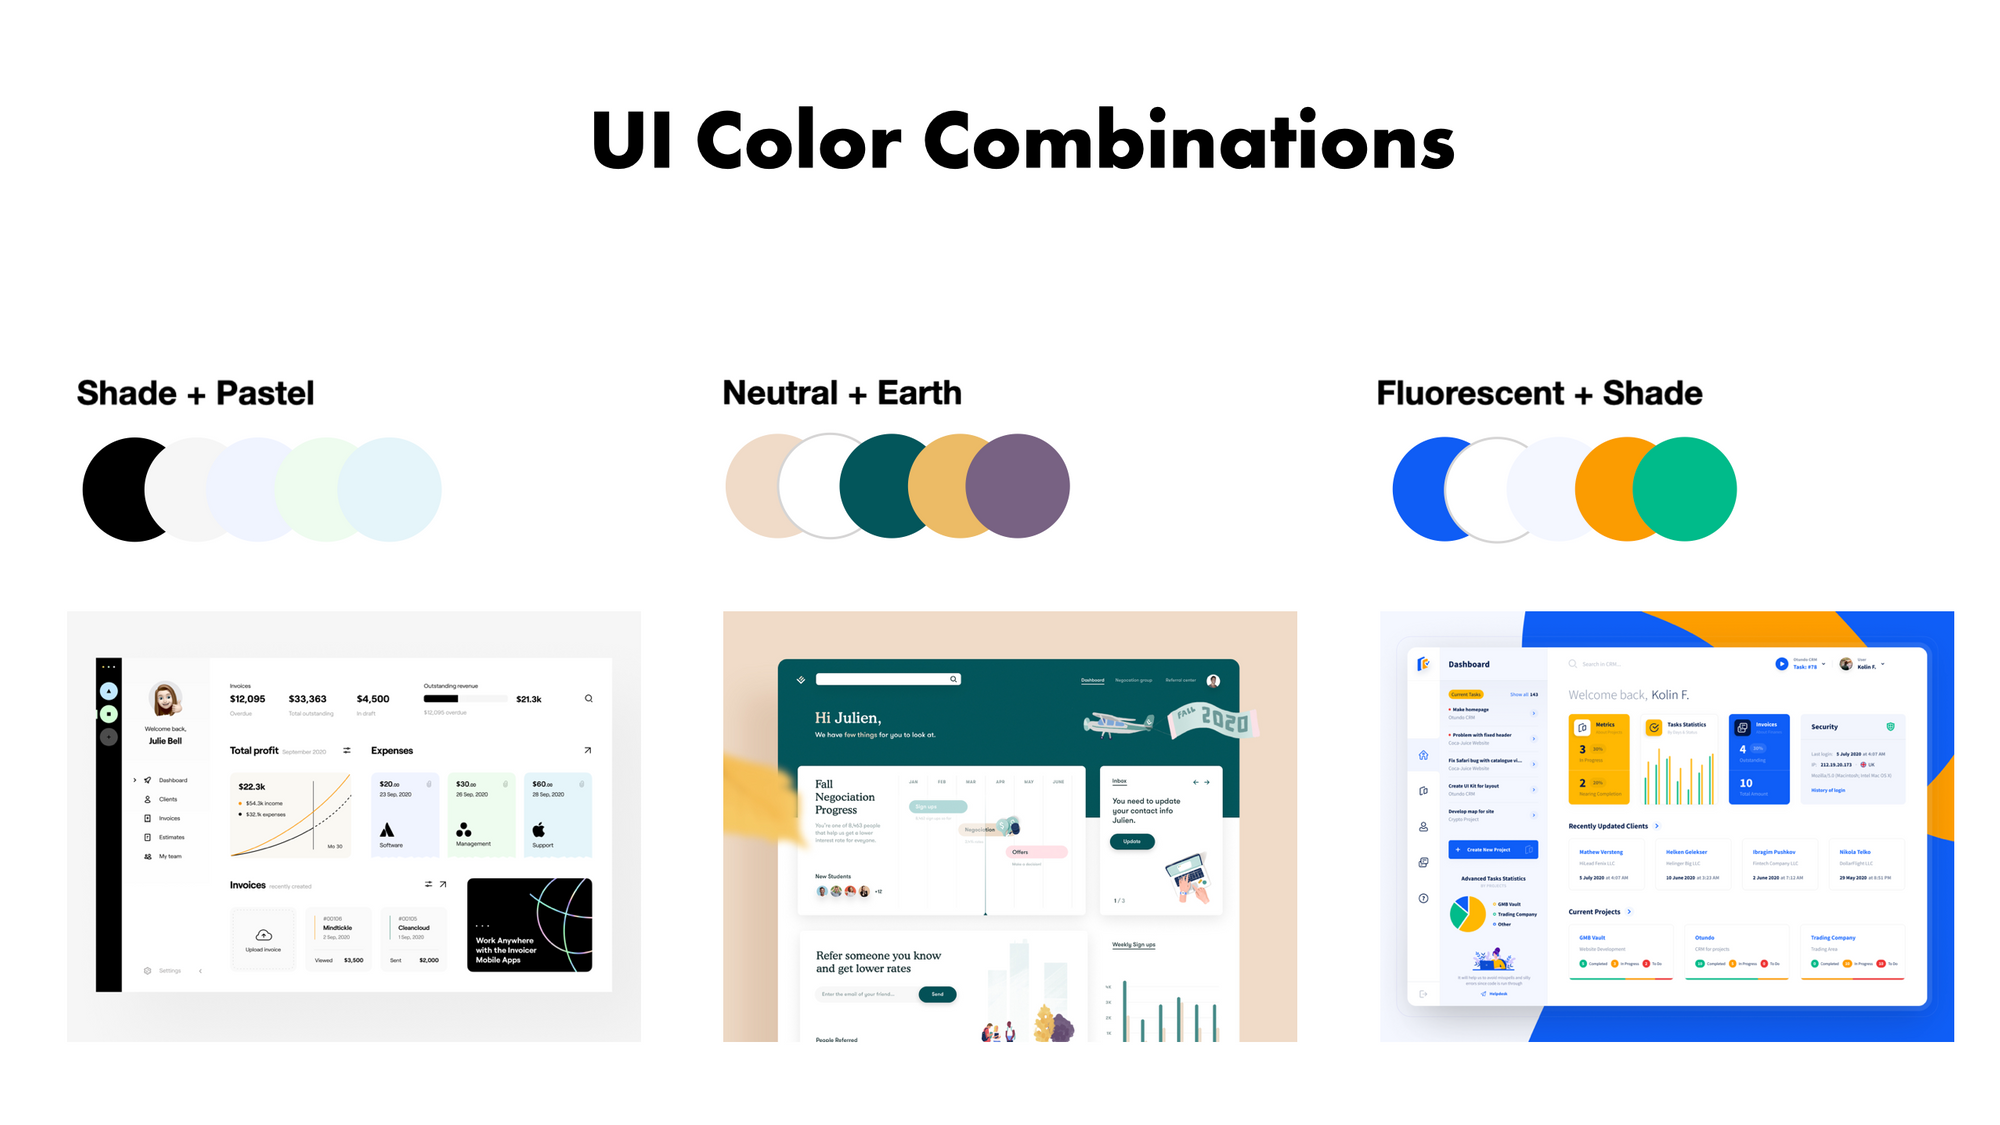 UI color combination examples Shade+Pastel | Neutral+Earth | Flourescent+Shade